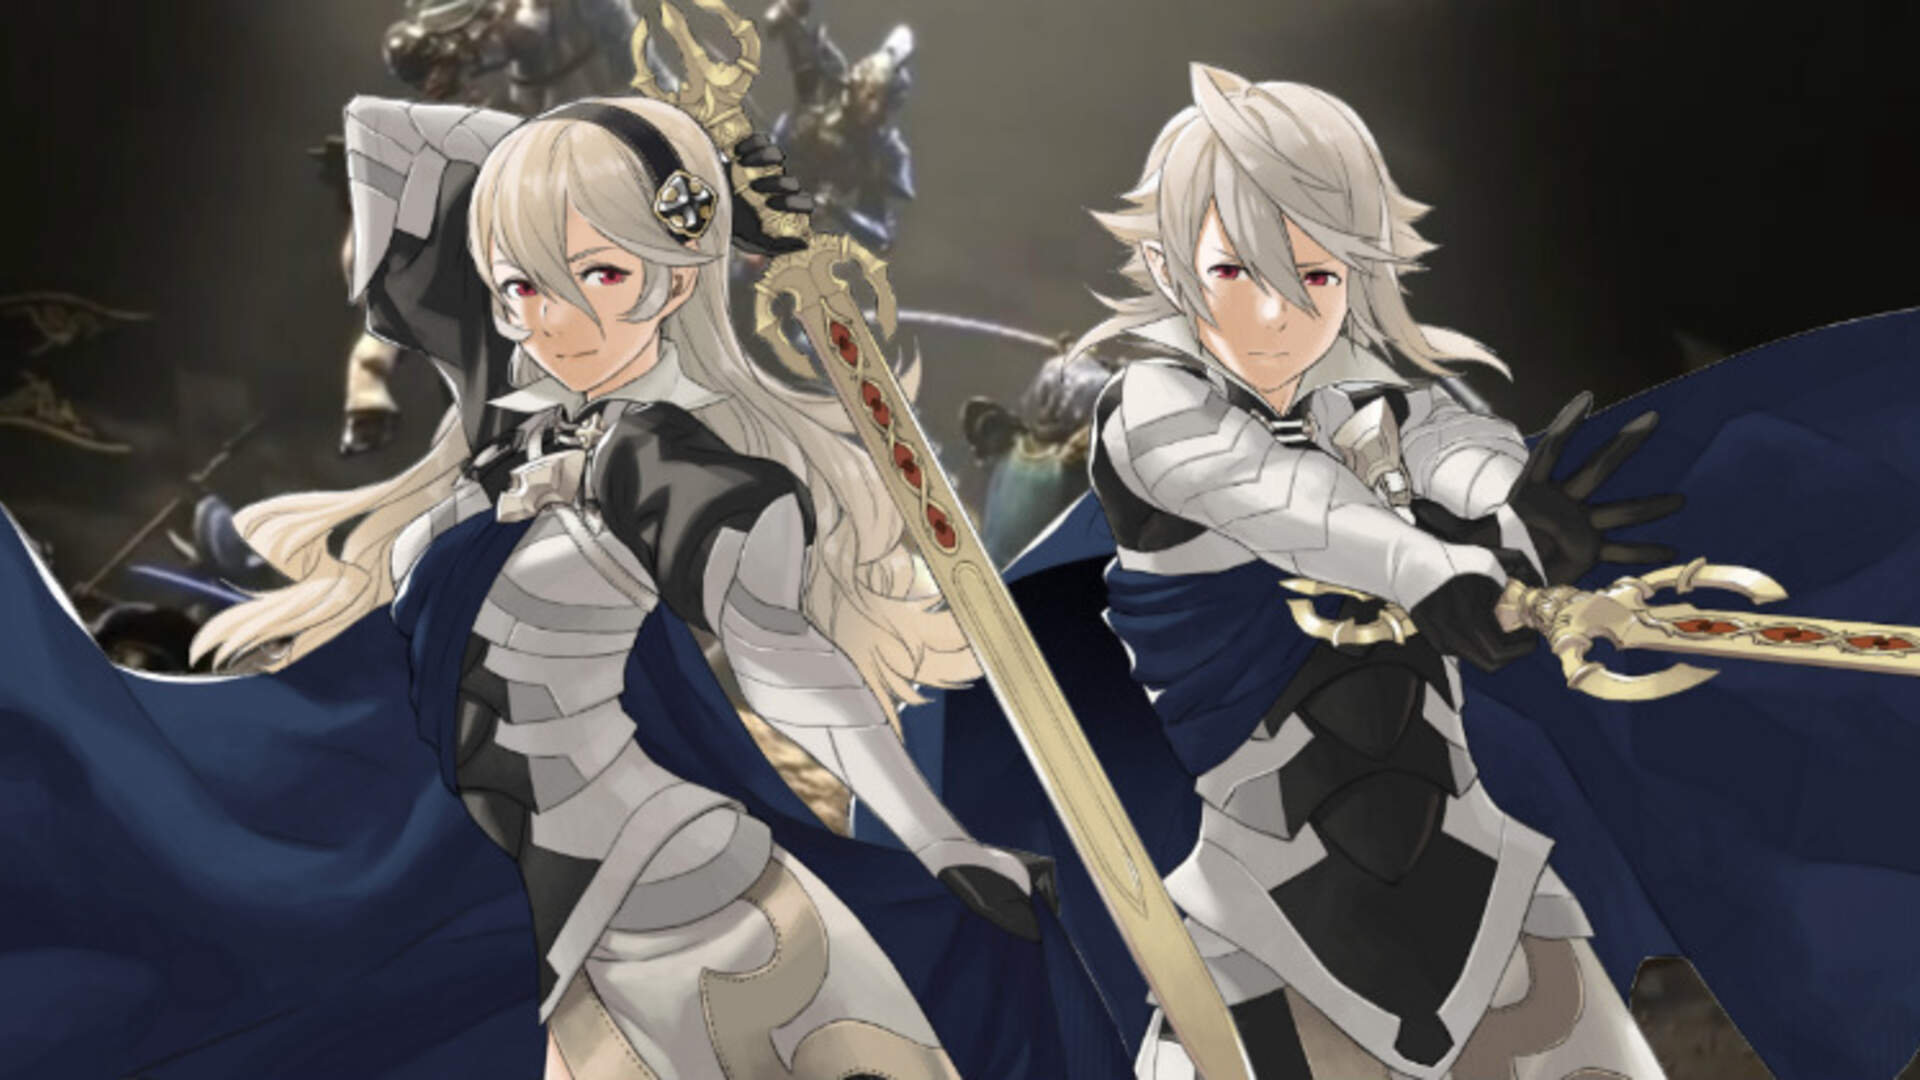 Community Hangout: Join Kat on Twitch While She Plays Fire Emblem Fates